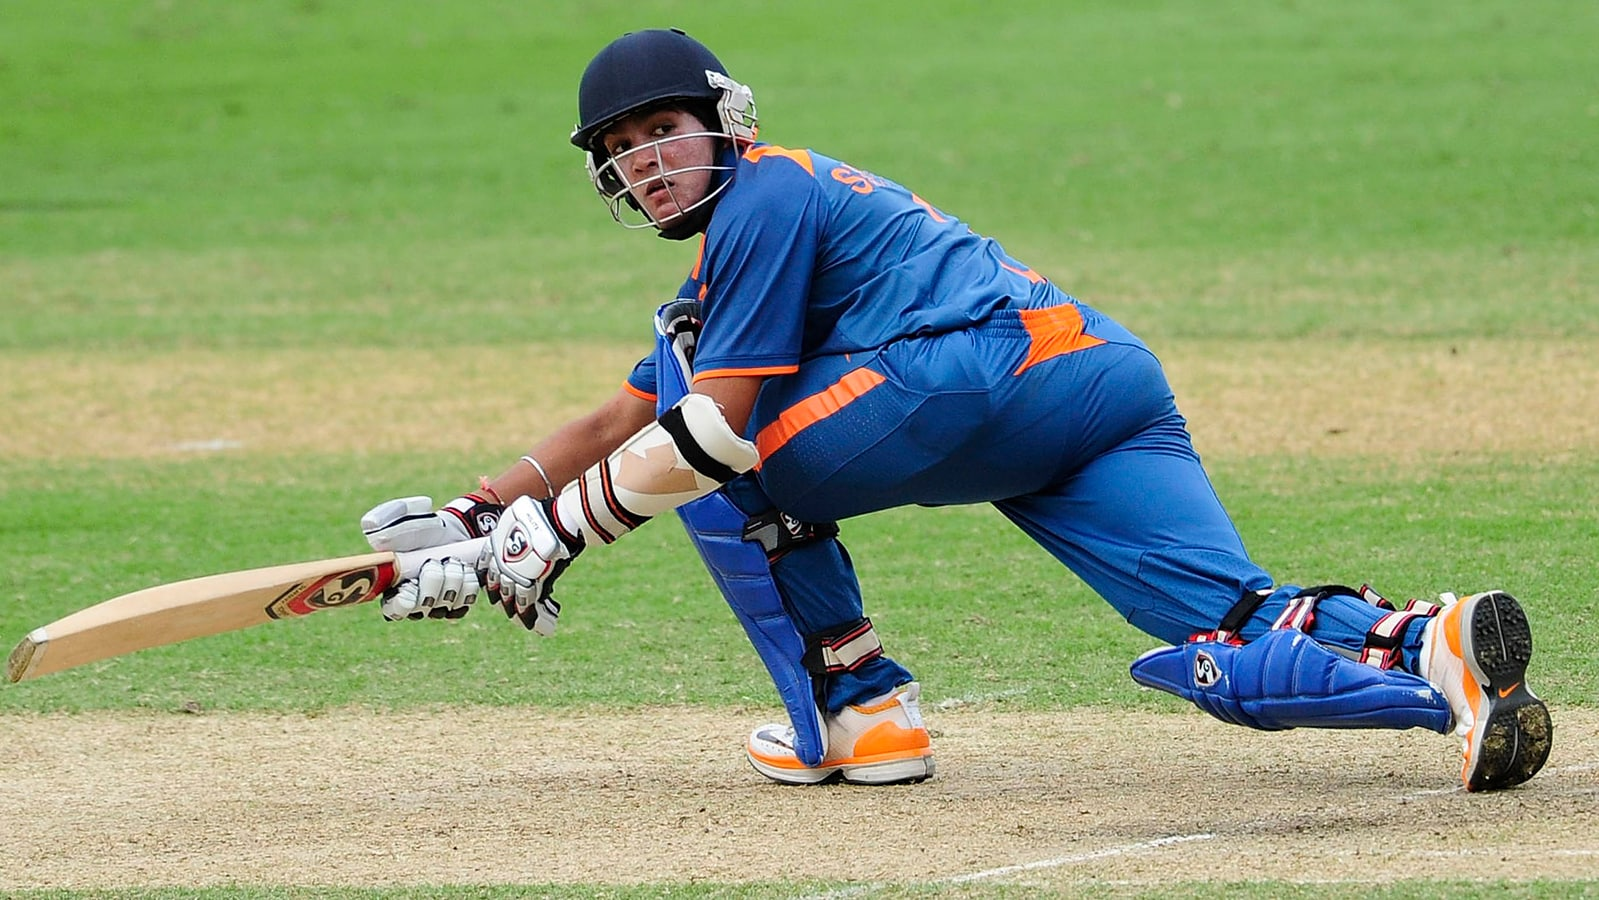 Smit Patel to play in Caribbean Premier League | Hindustan Times